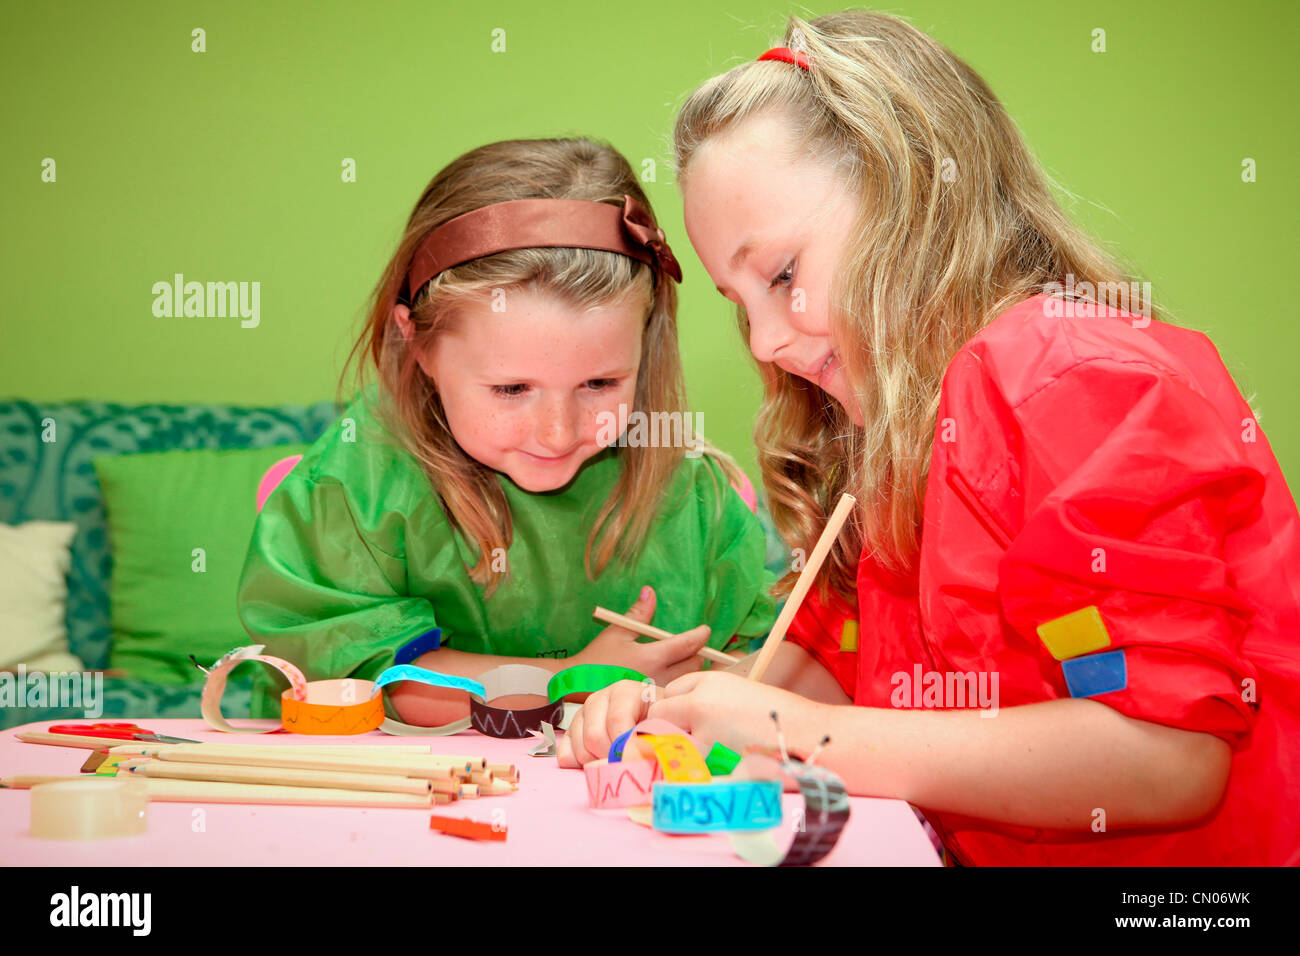 happy smiling children playing drawing and making craft in class at kindergarten school - Stock Image